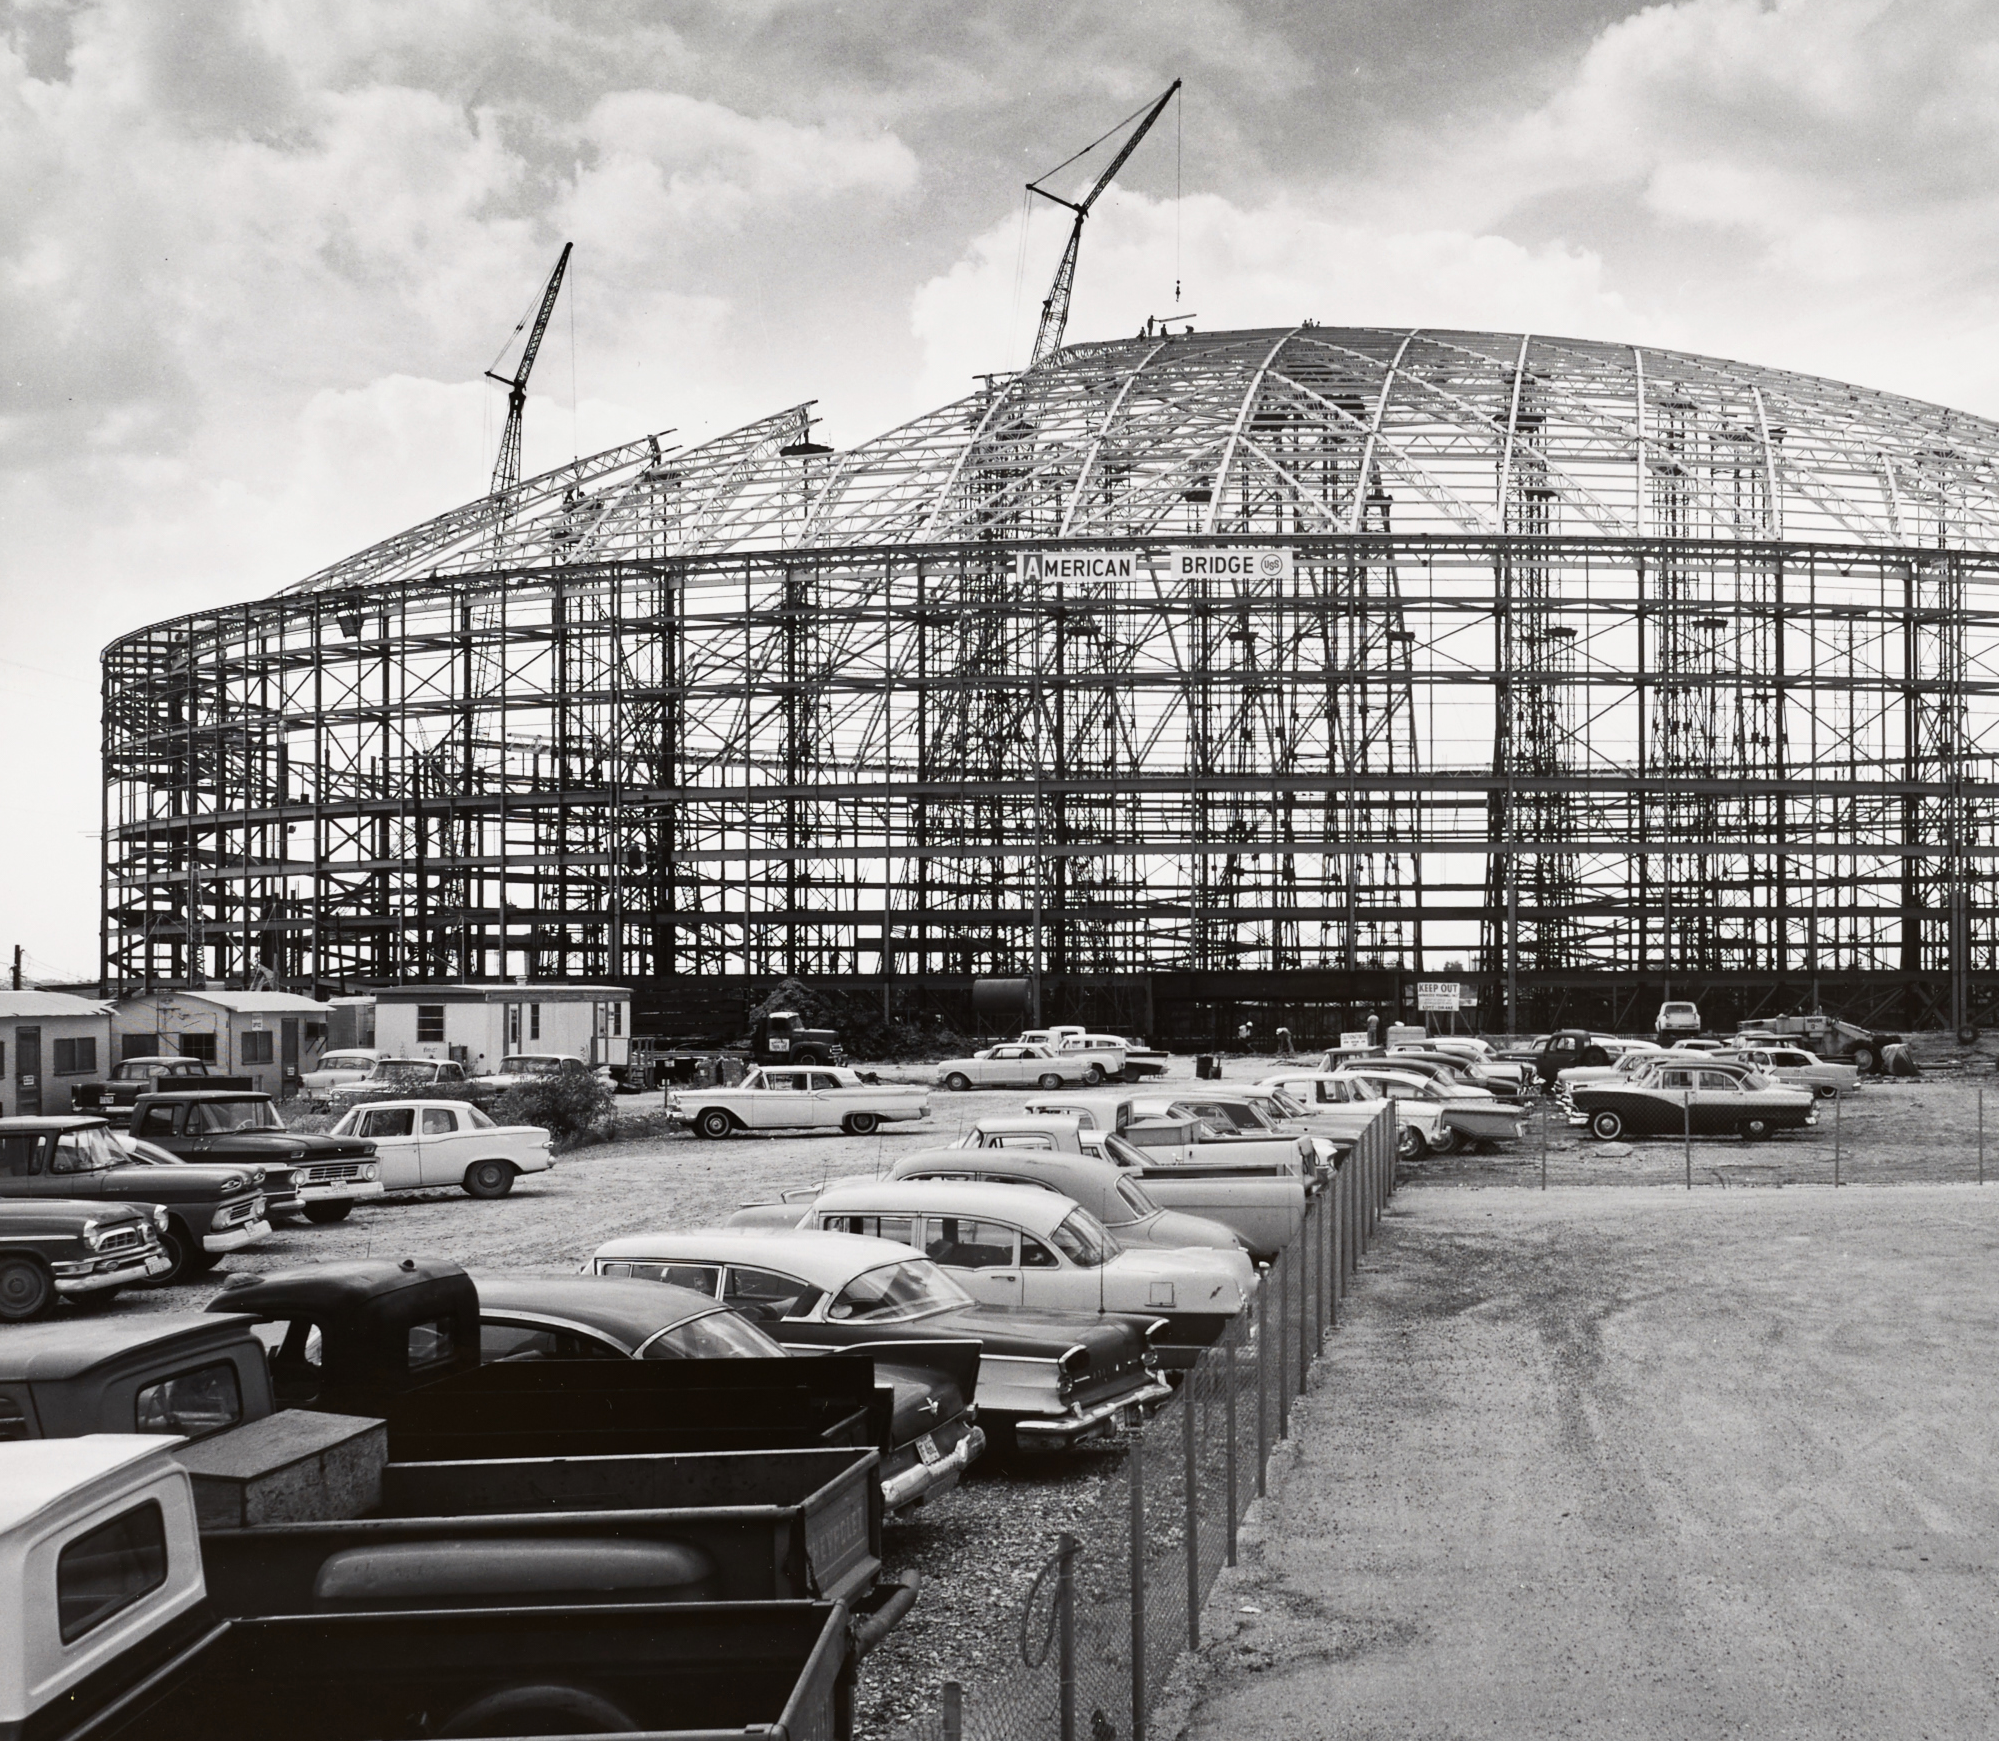 black and white image of astrodome under construction